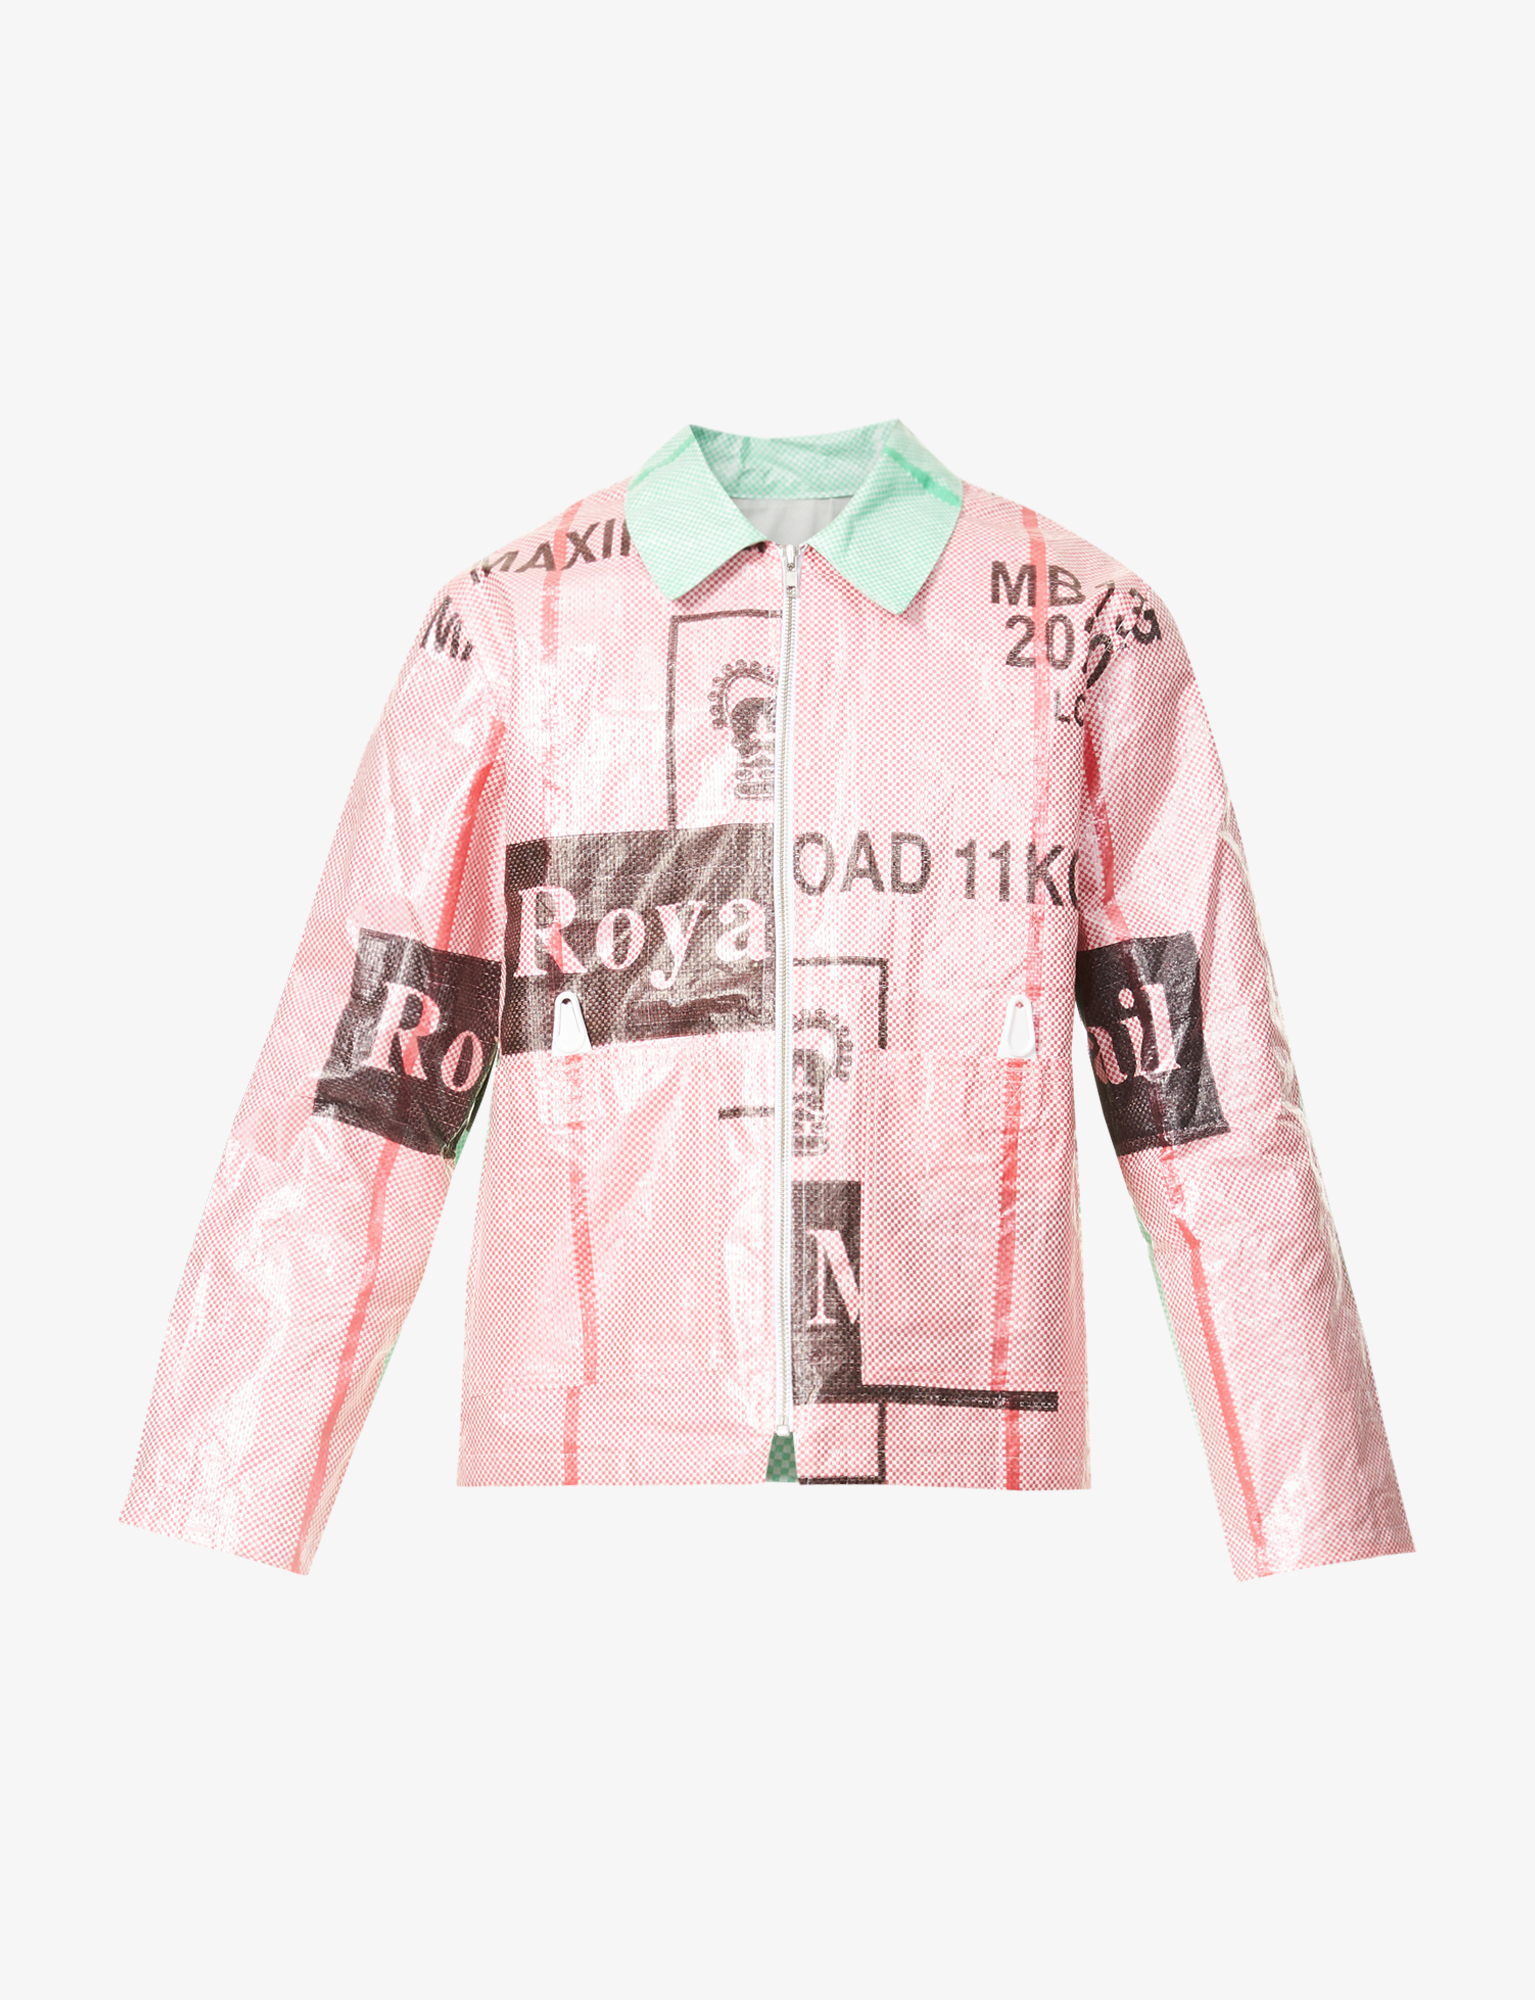 WORK JACKET / RED GREEN